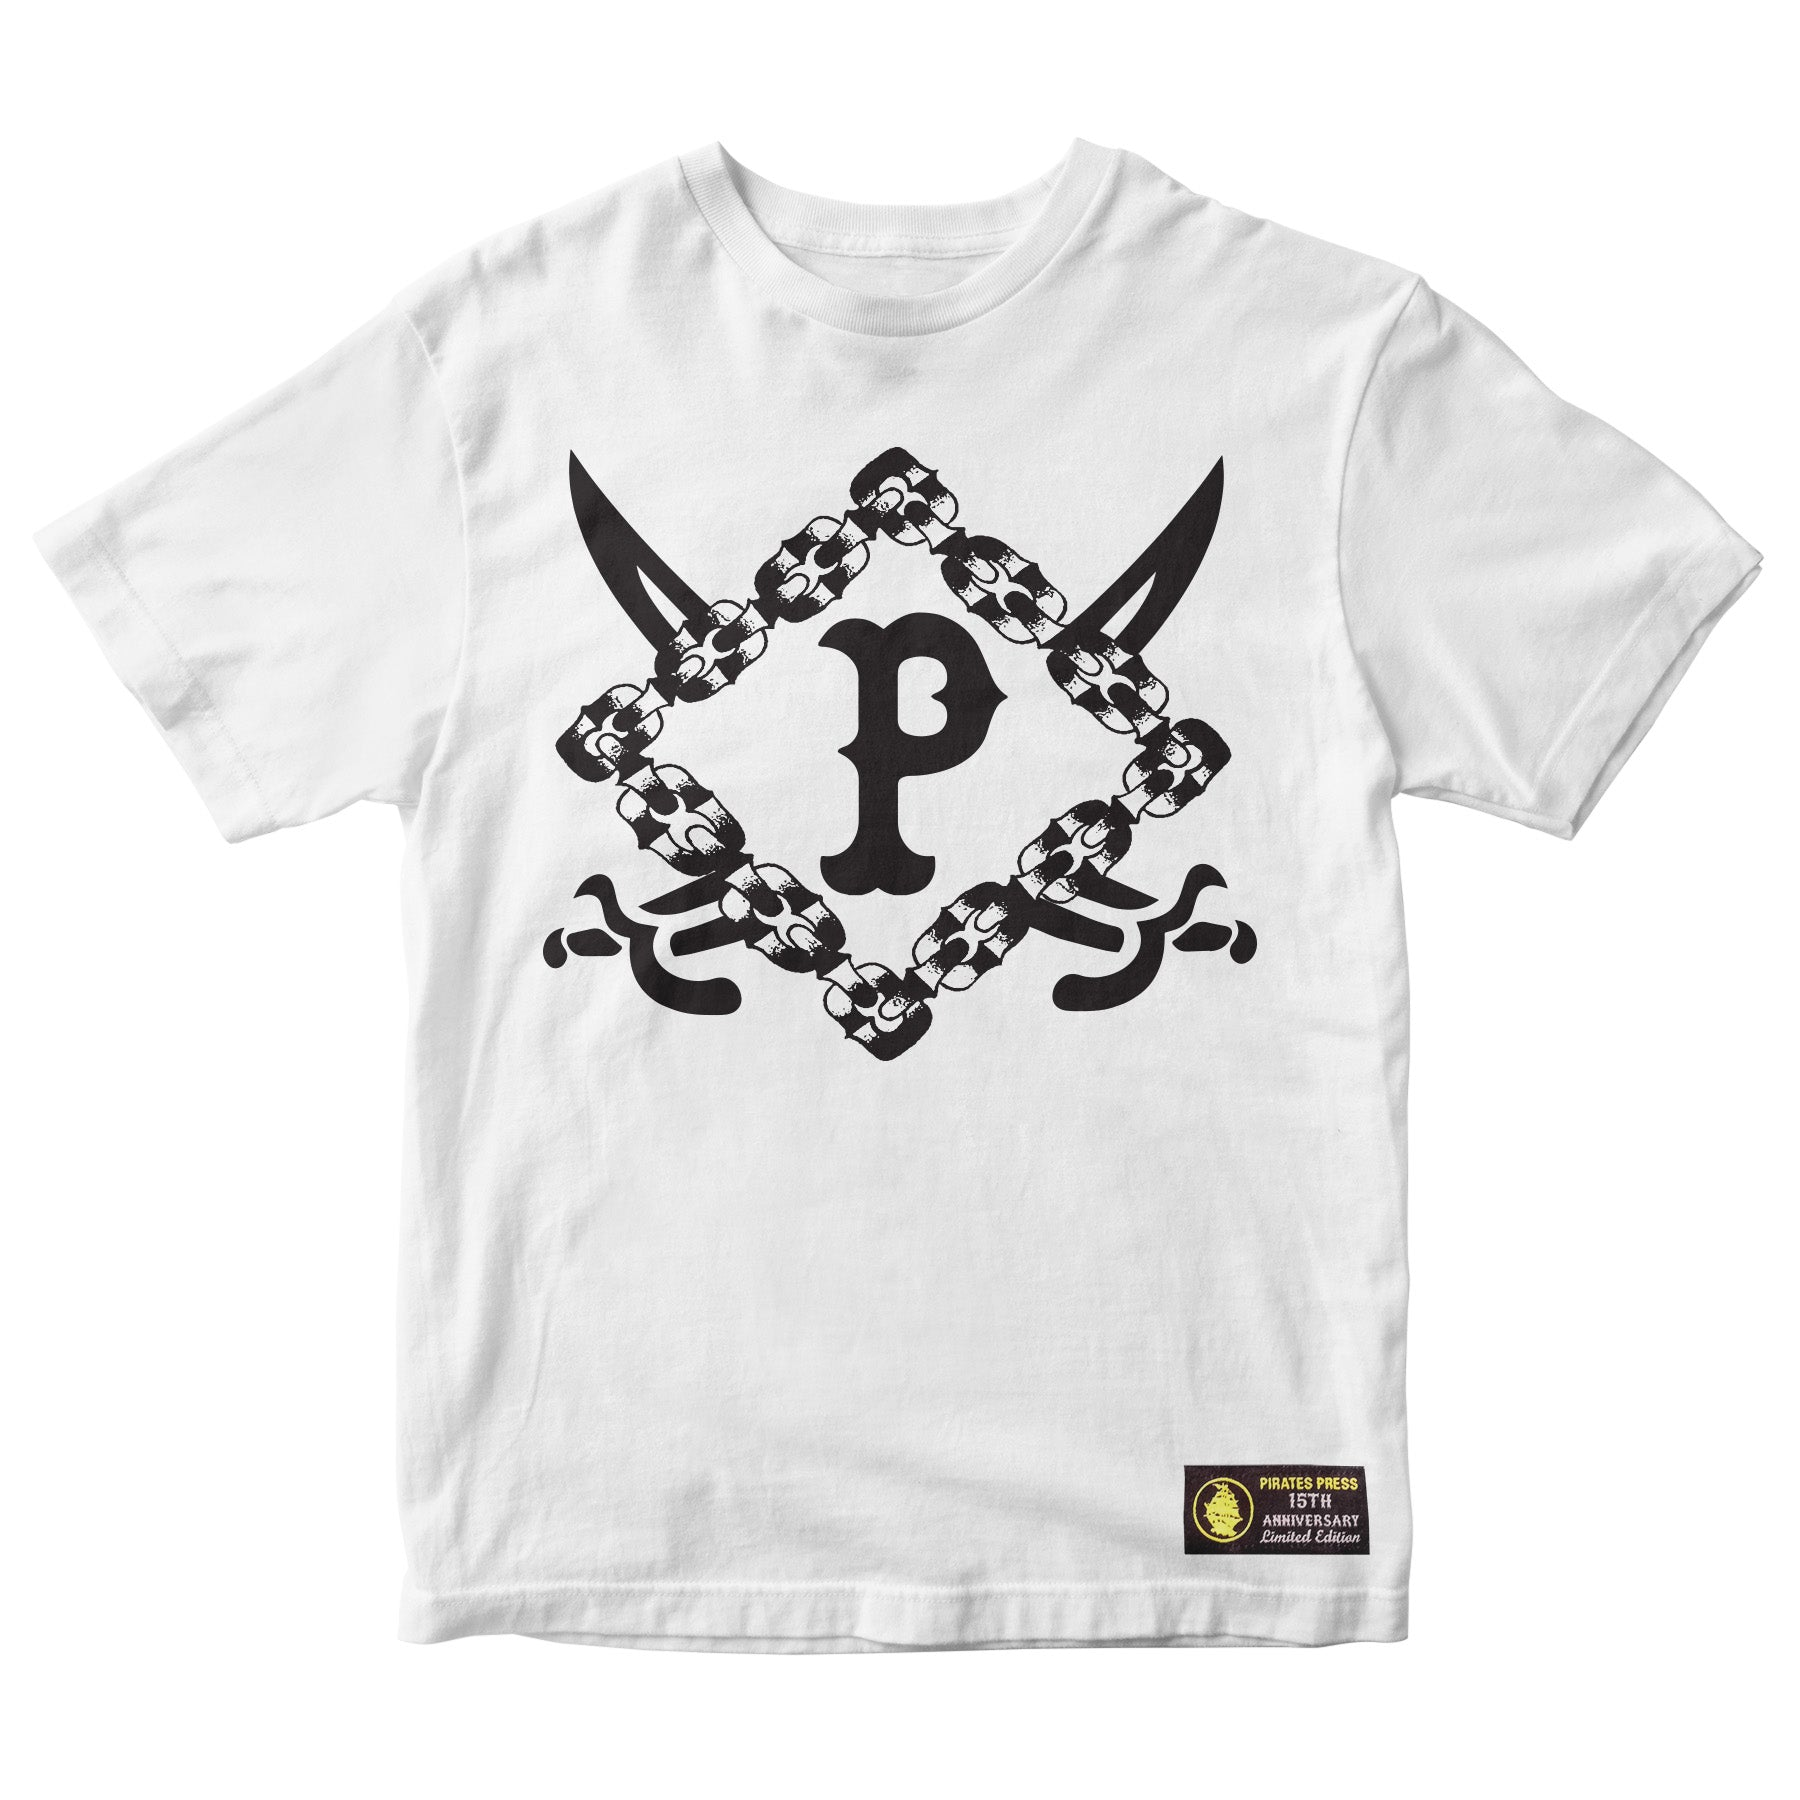 Pirates Press 15th Anniversary - Bryan Kienlen - White - T-Shirt